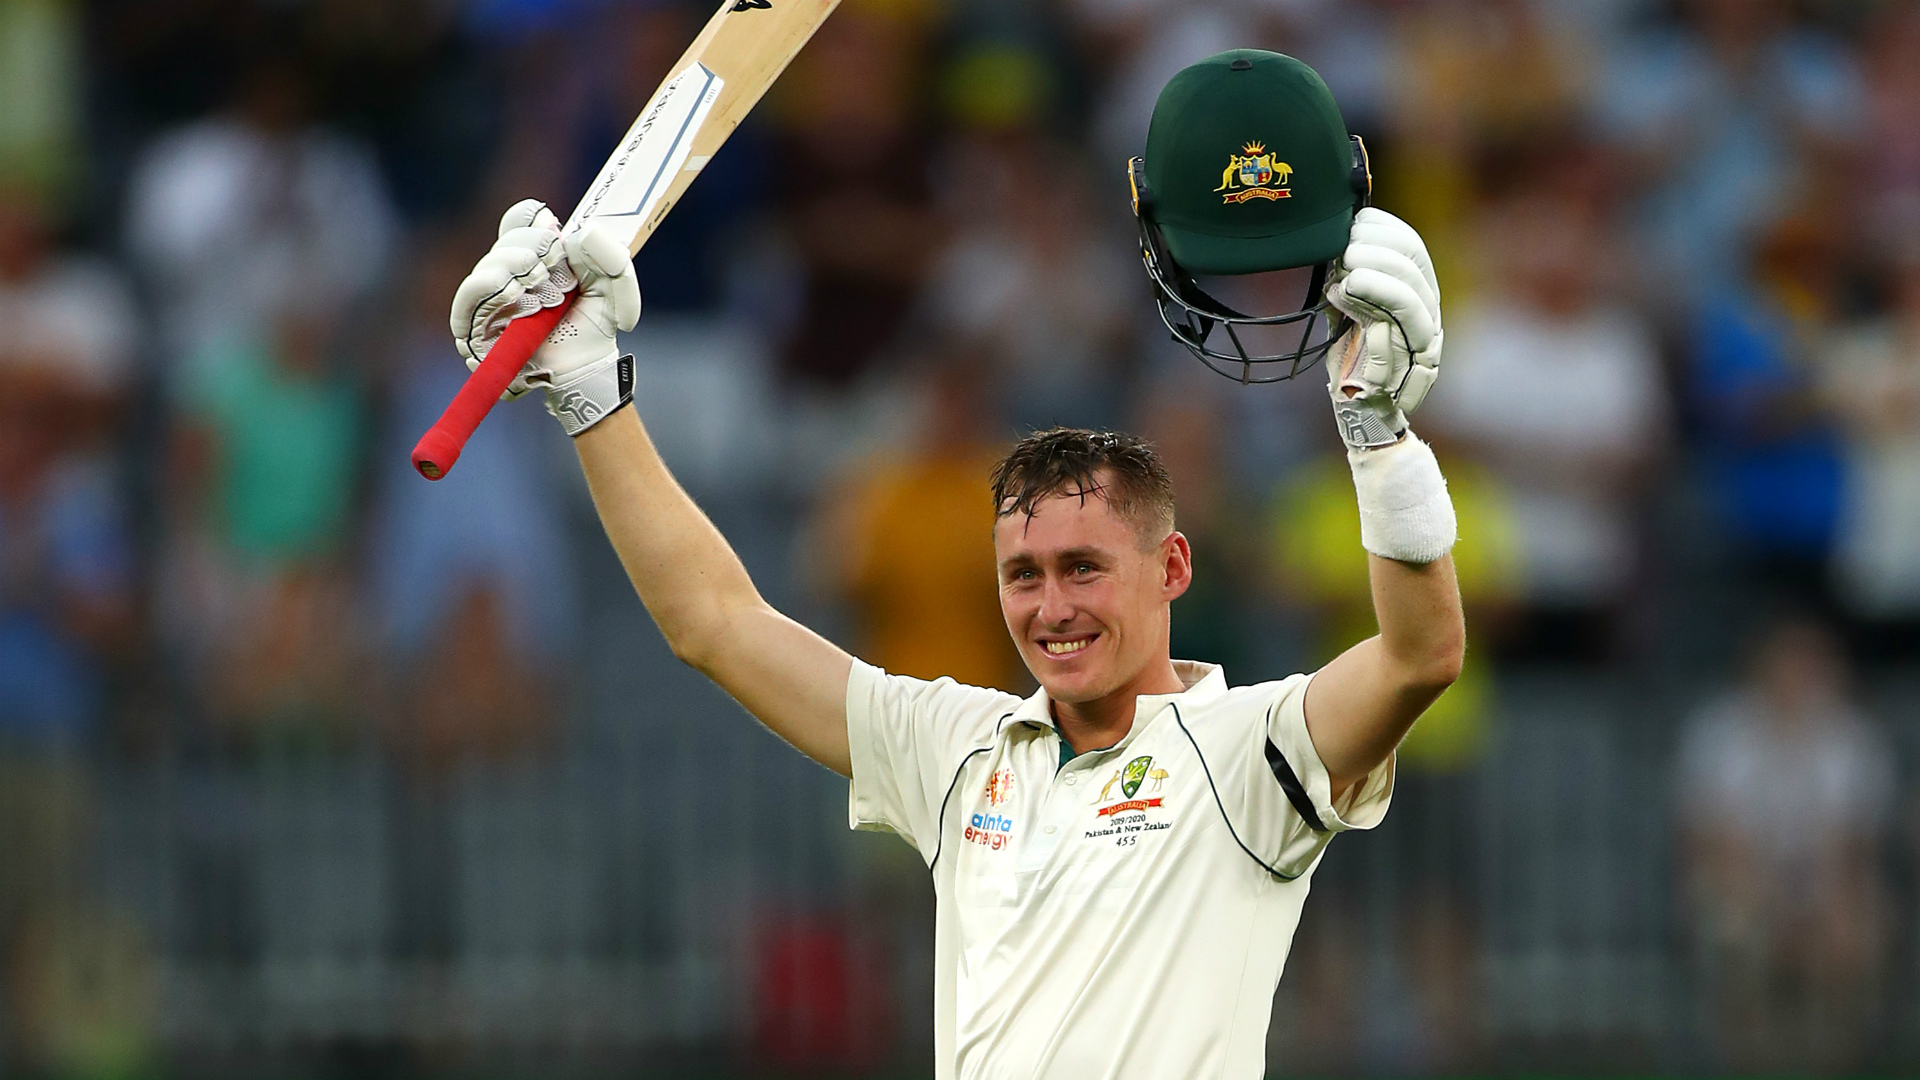 Australia v New Zealand: Marnus Labuschagne hits another hundred as hosts start strong